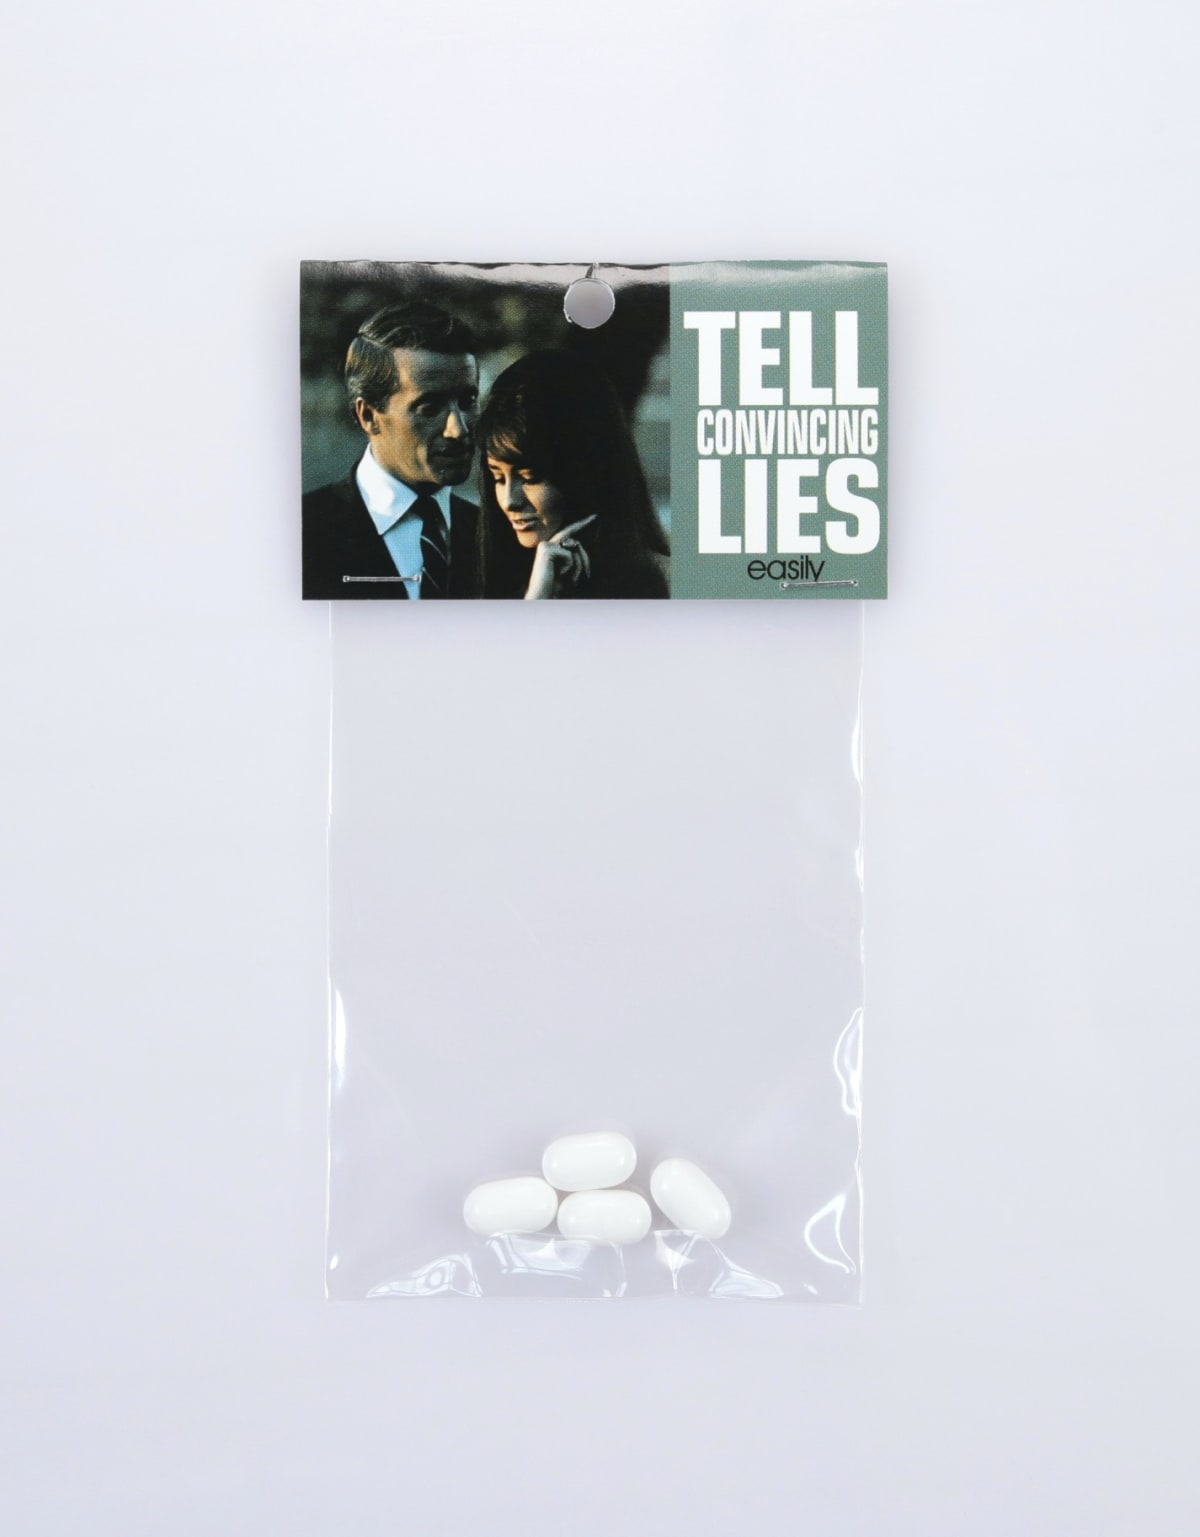 Tell convincing lies, 1999